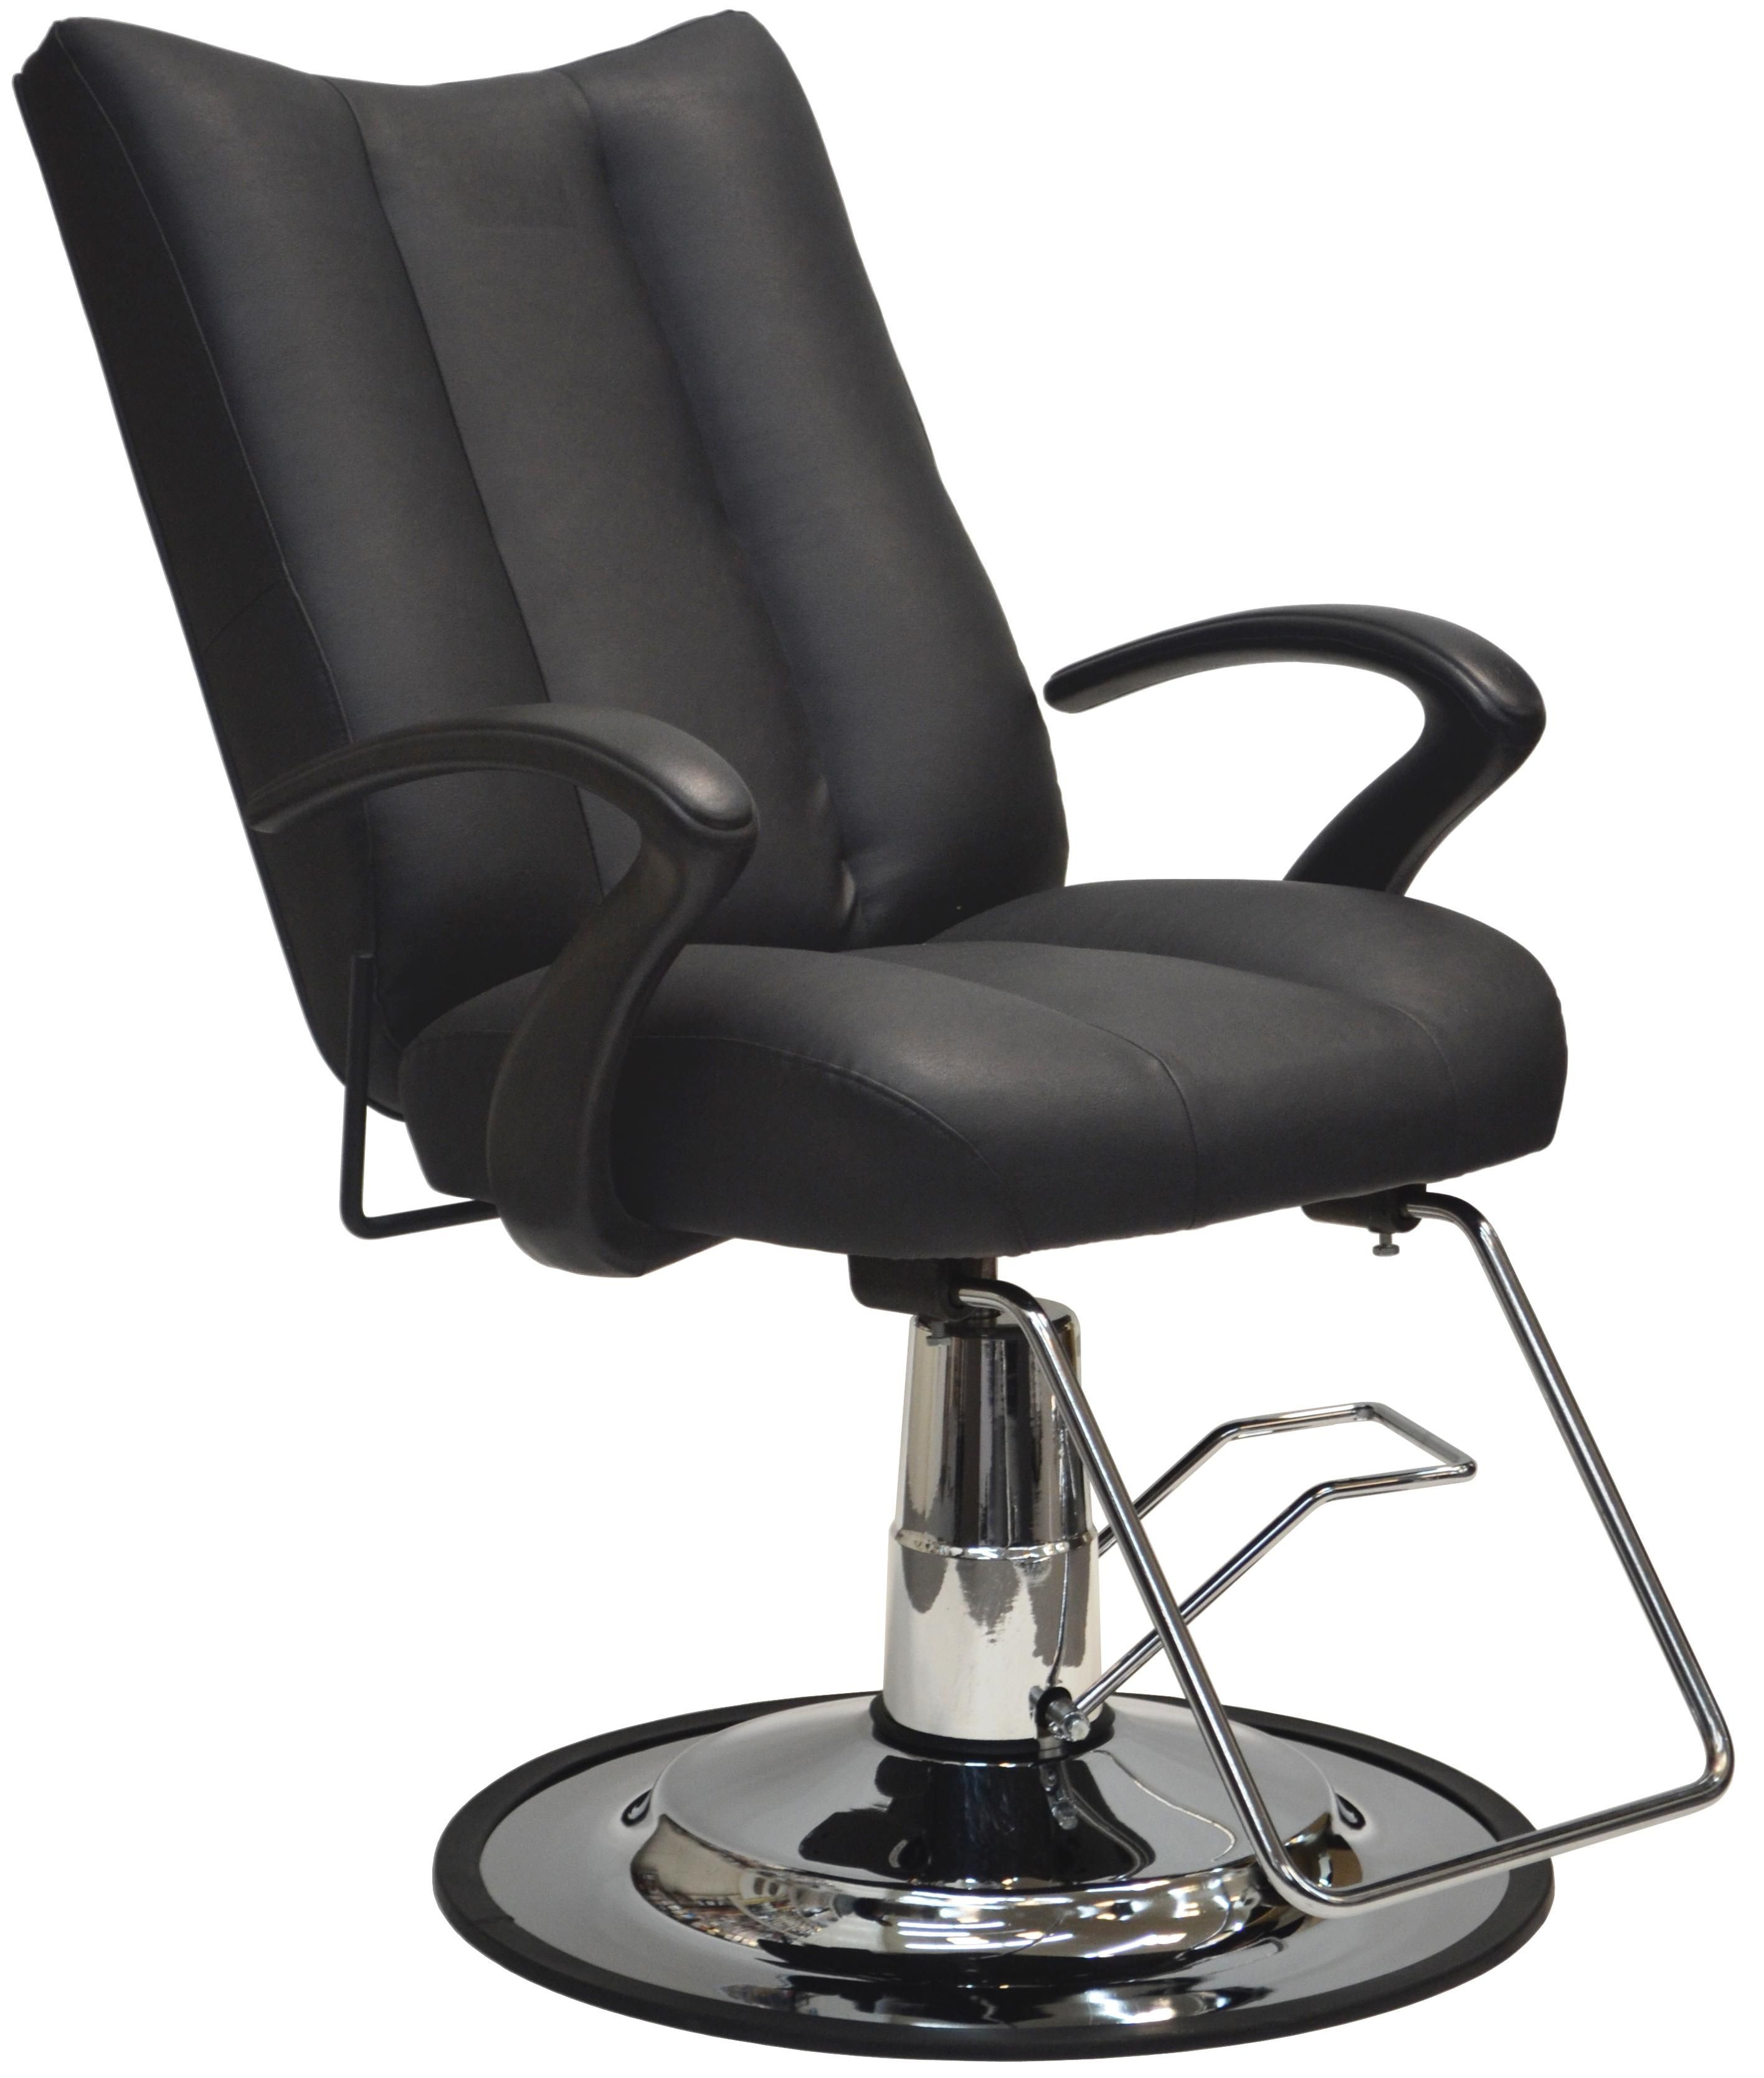 Deluxe make up chair on oversize round hydraulic base